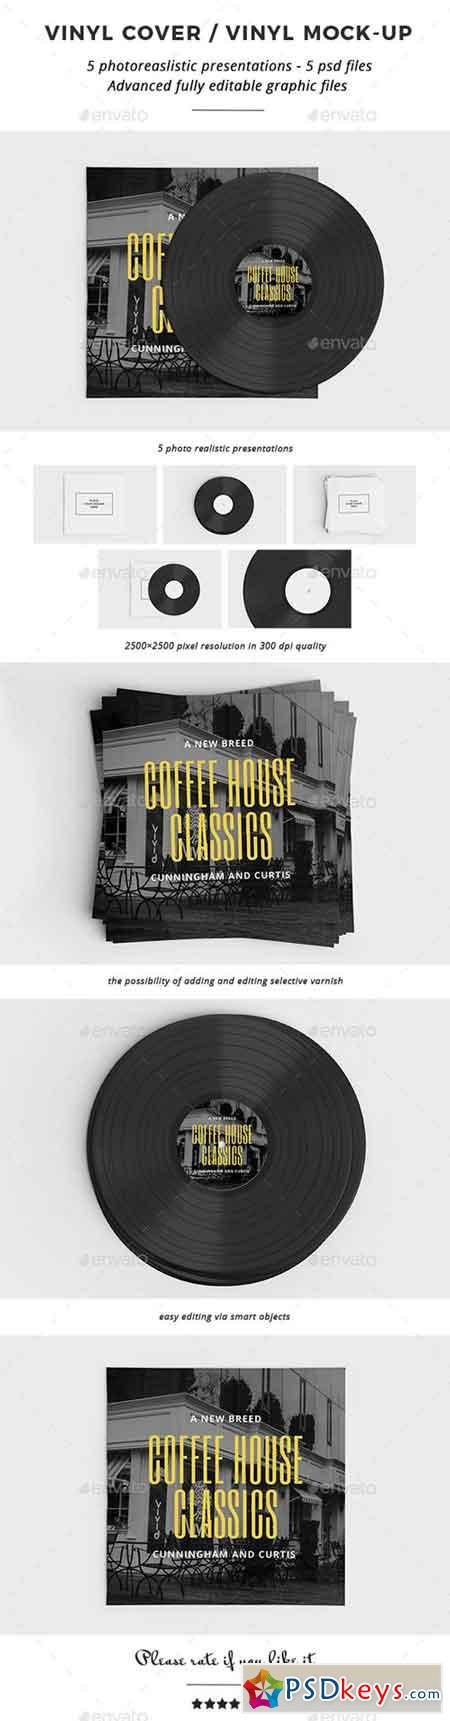 Vinyl Cover Vinyl Mock-up 20449778